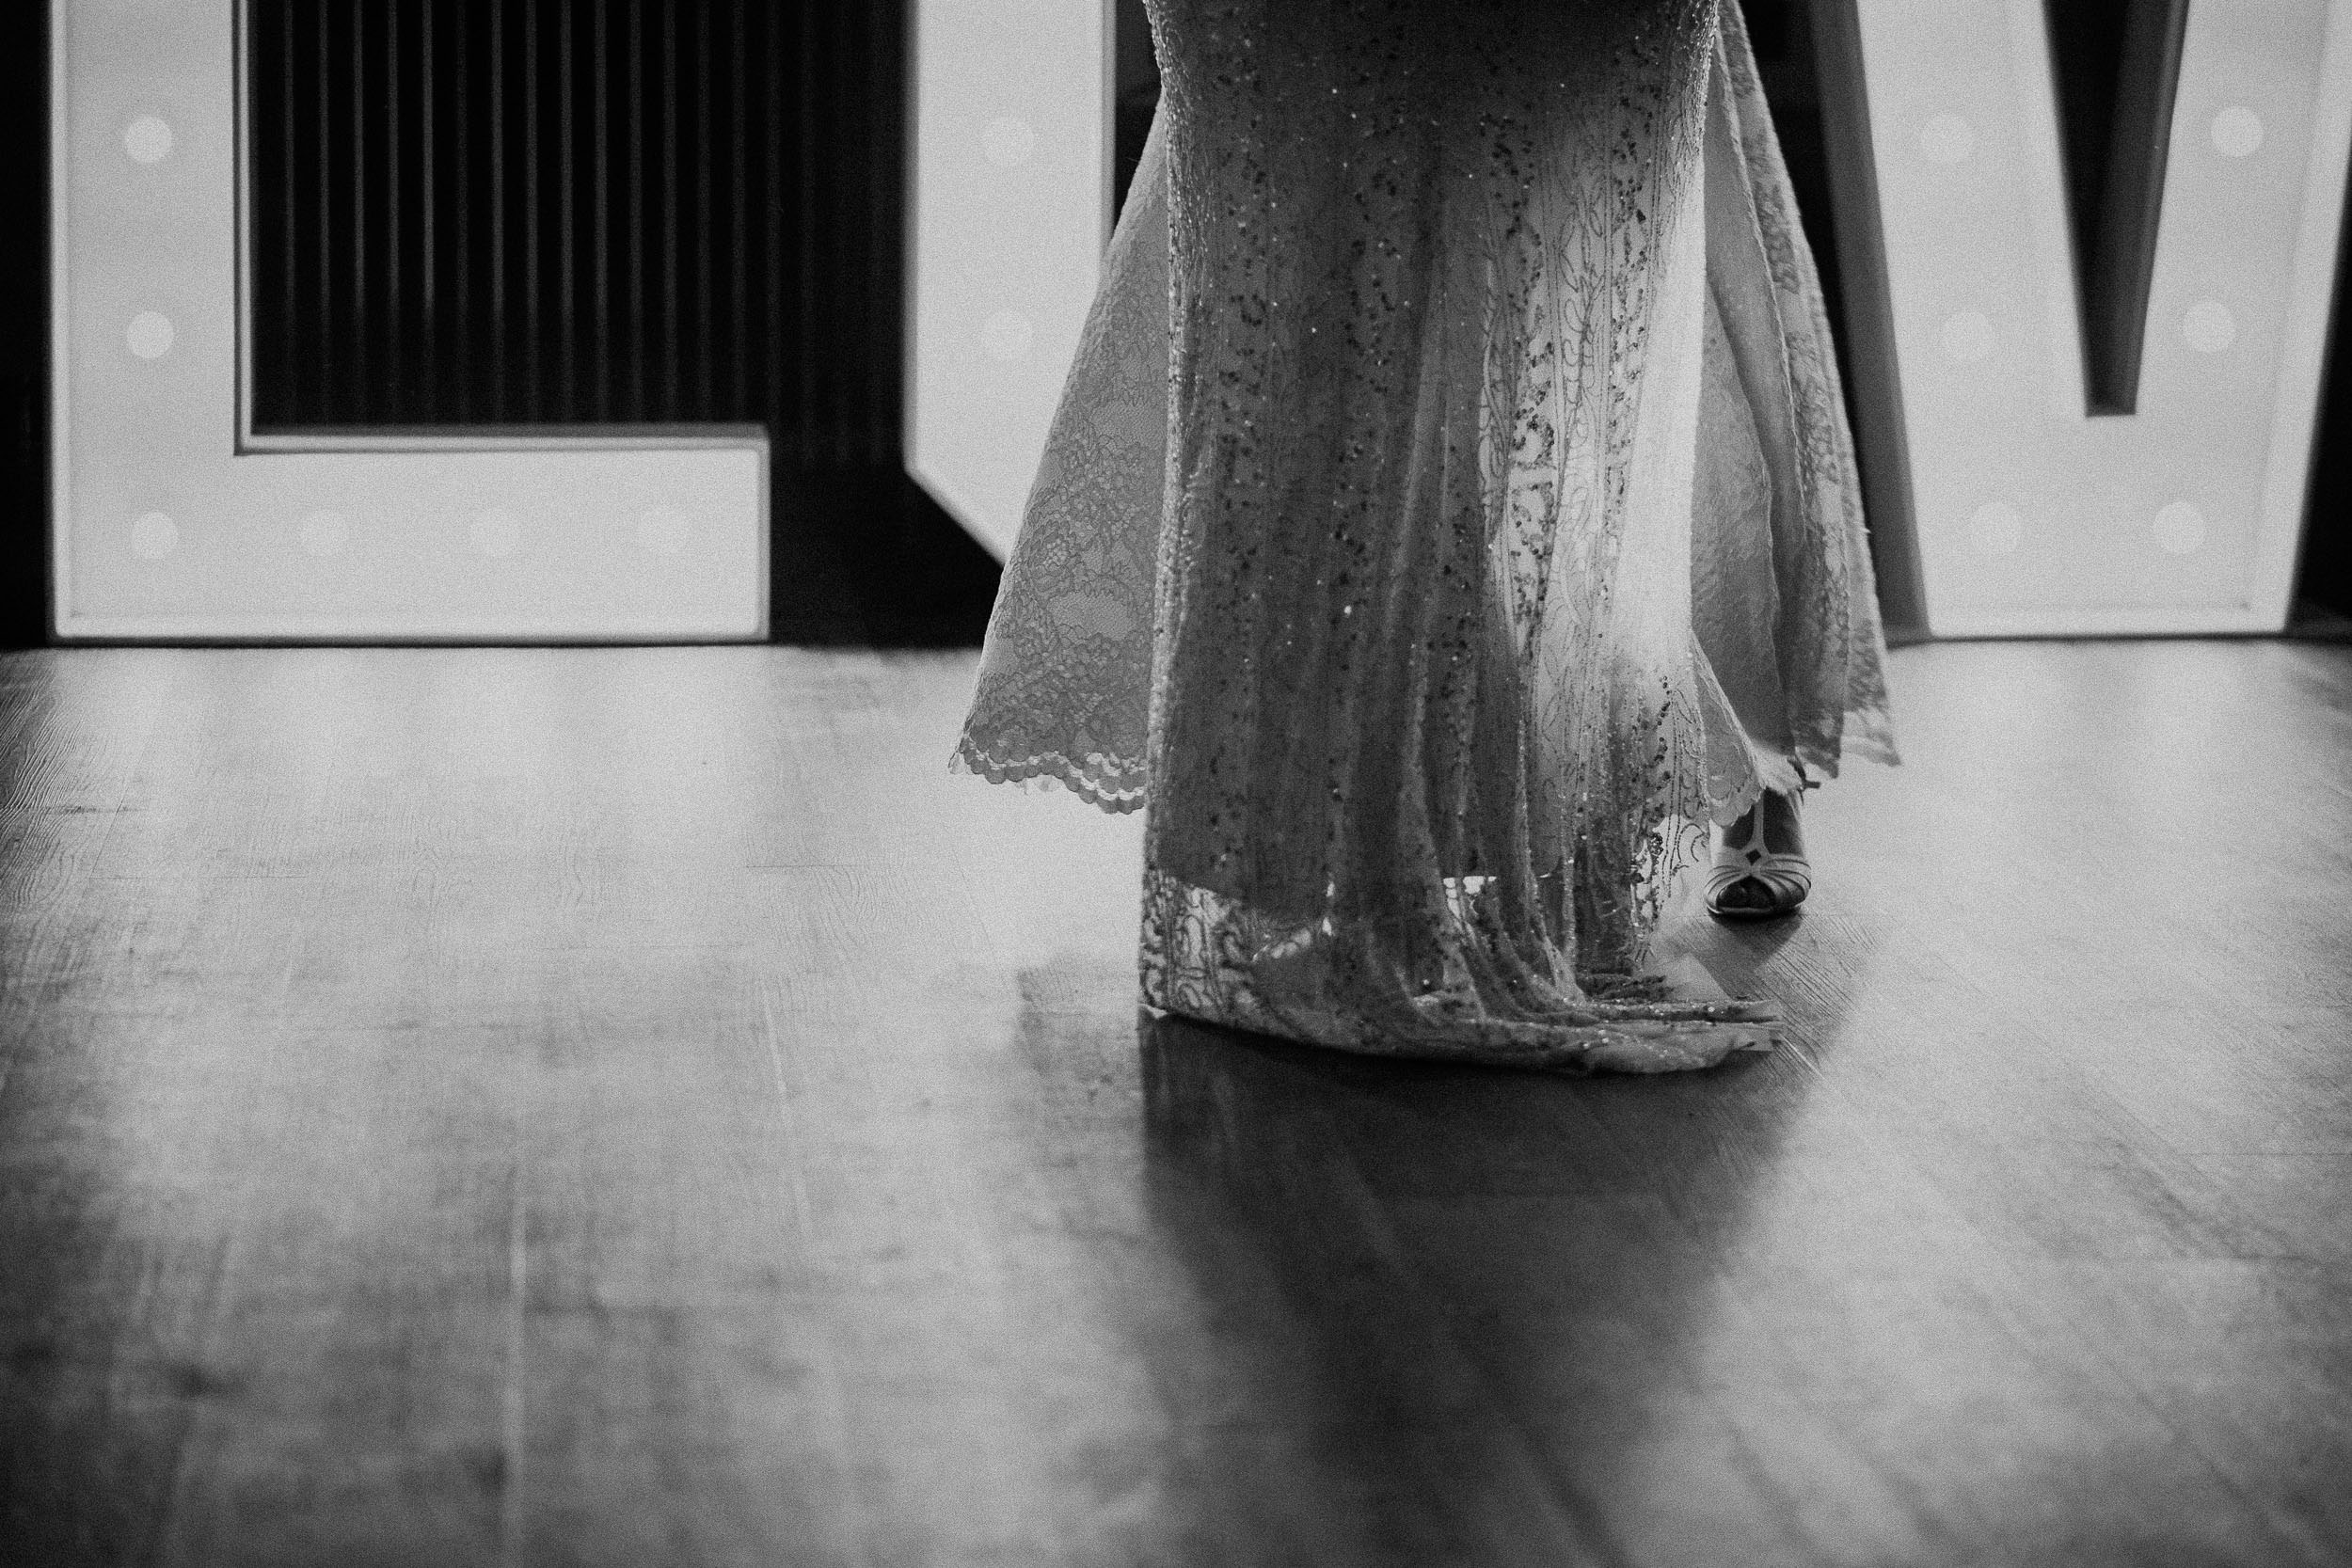 Black and white close up photo of two brides wedding dresses during first dance